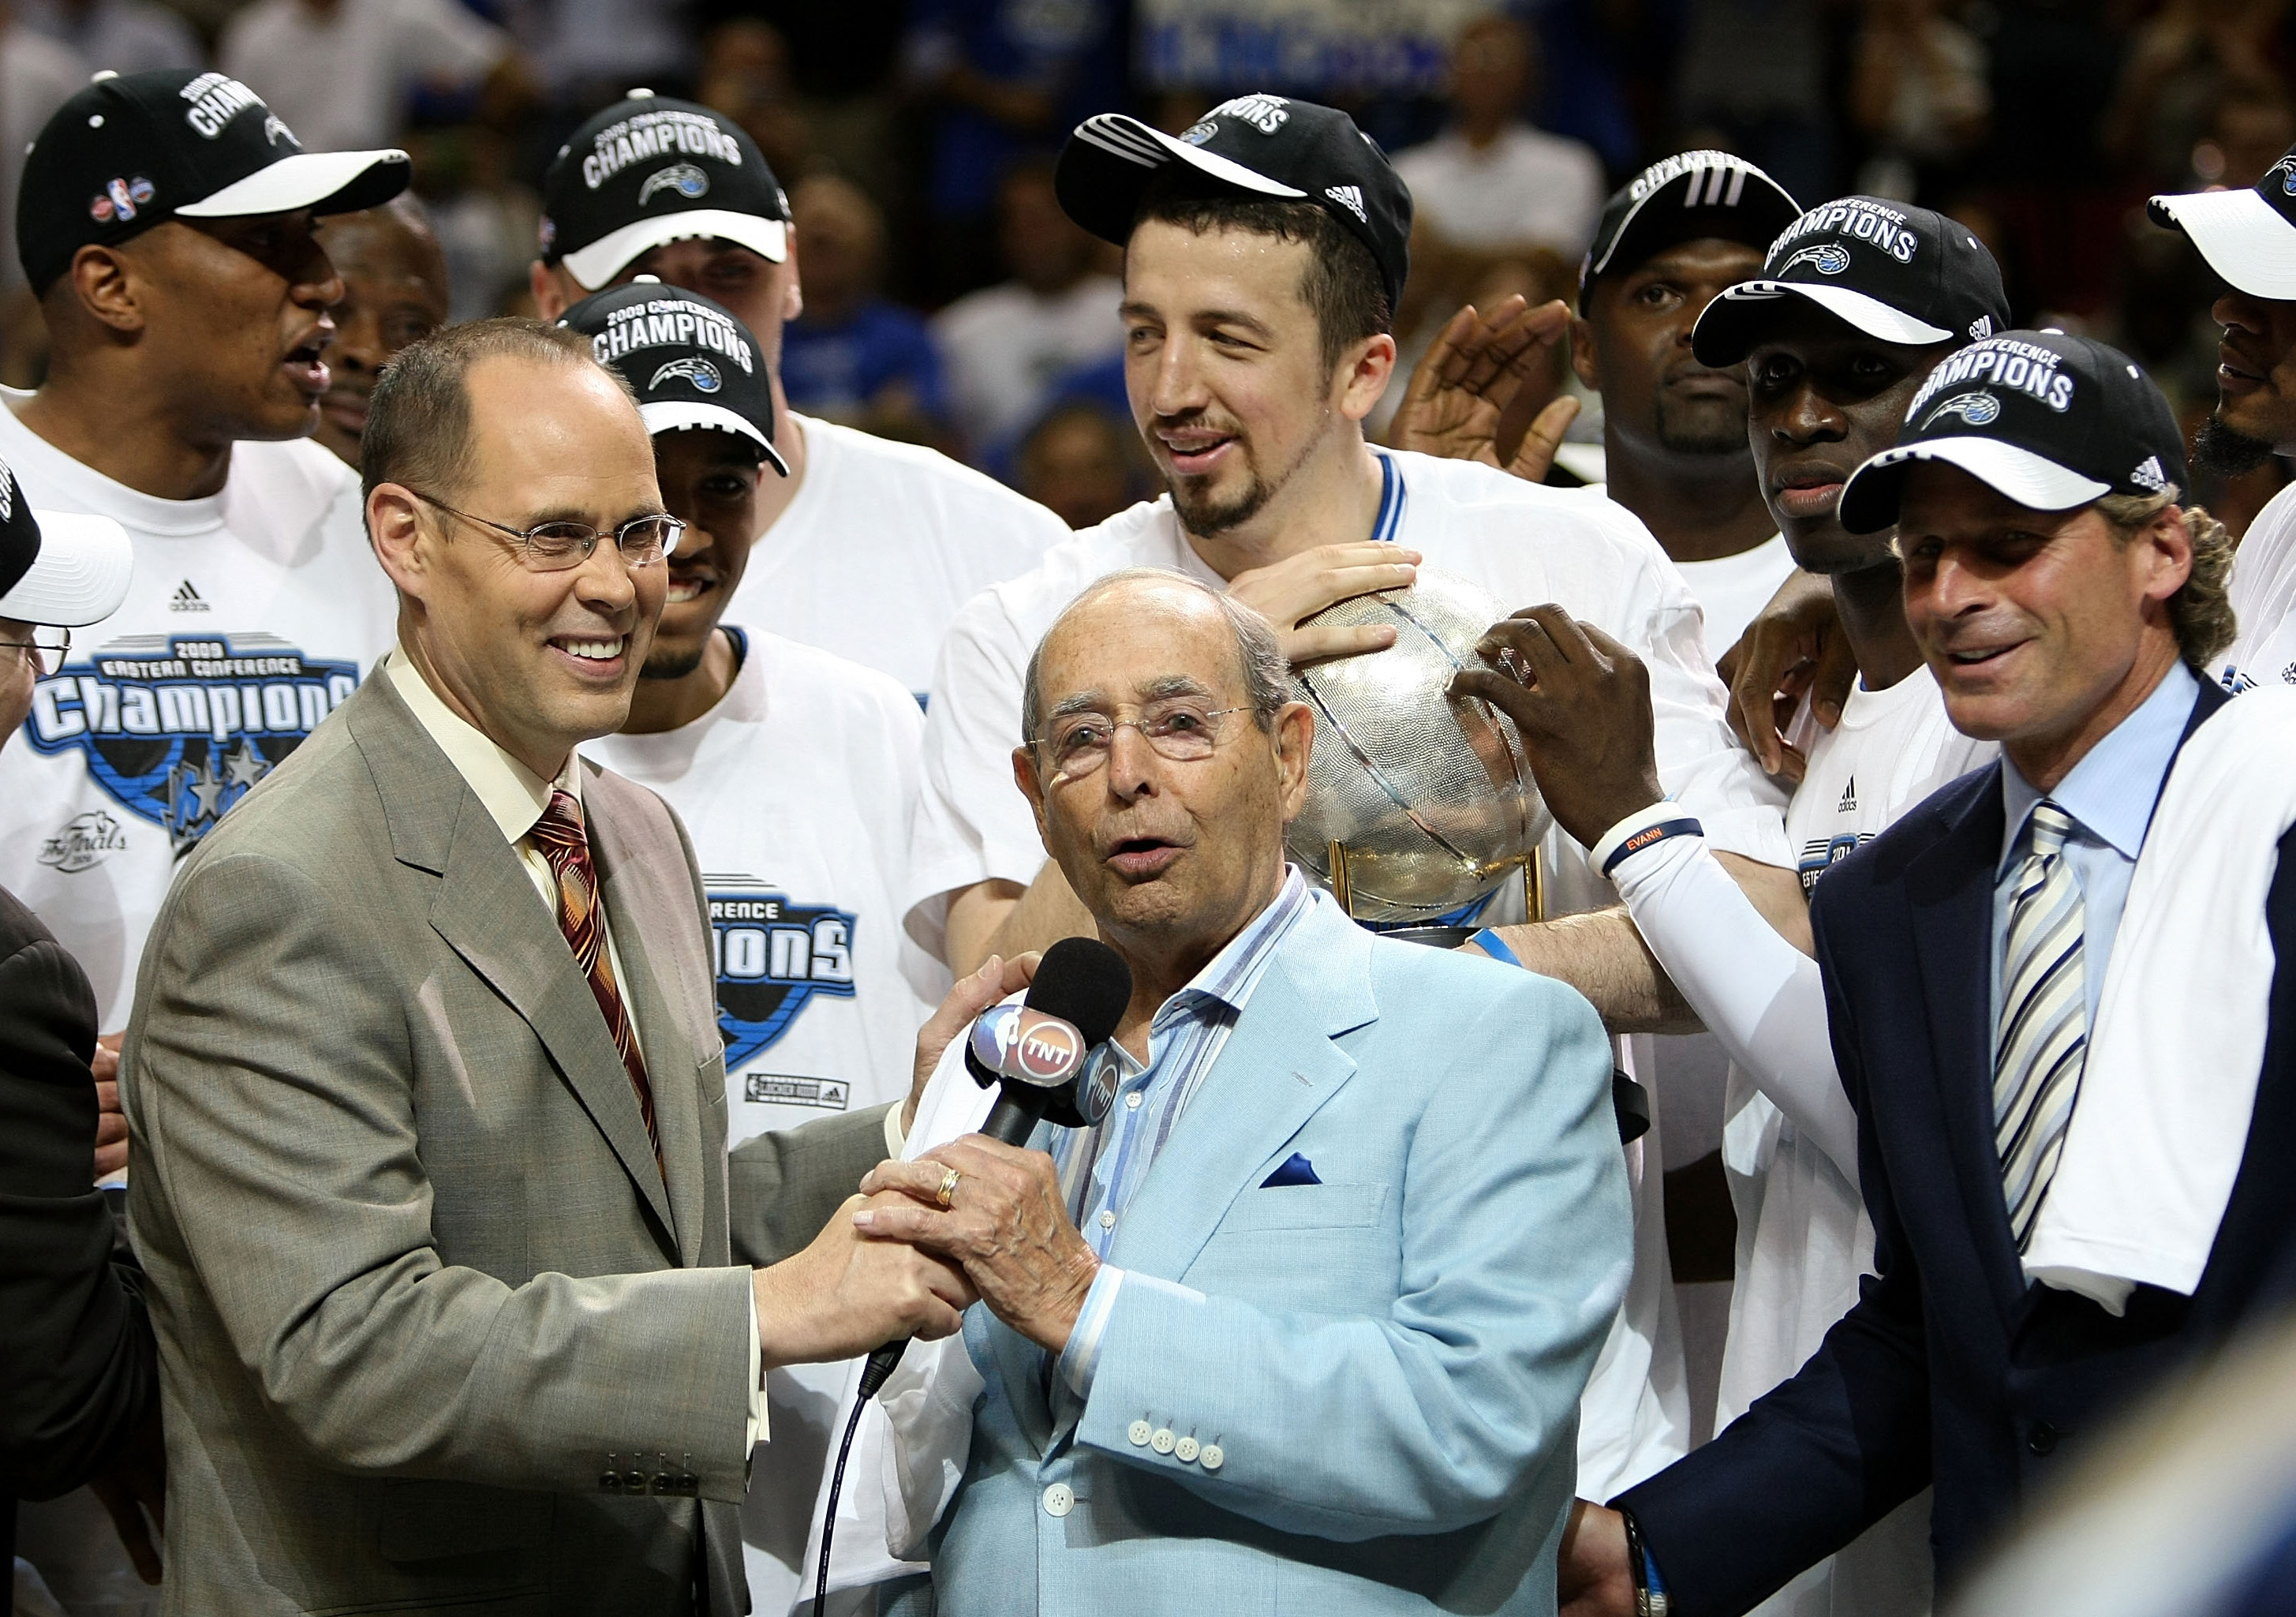 Magic Owners Pledged $2 Million For Arena Workers While The Season Is Suspended